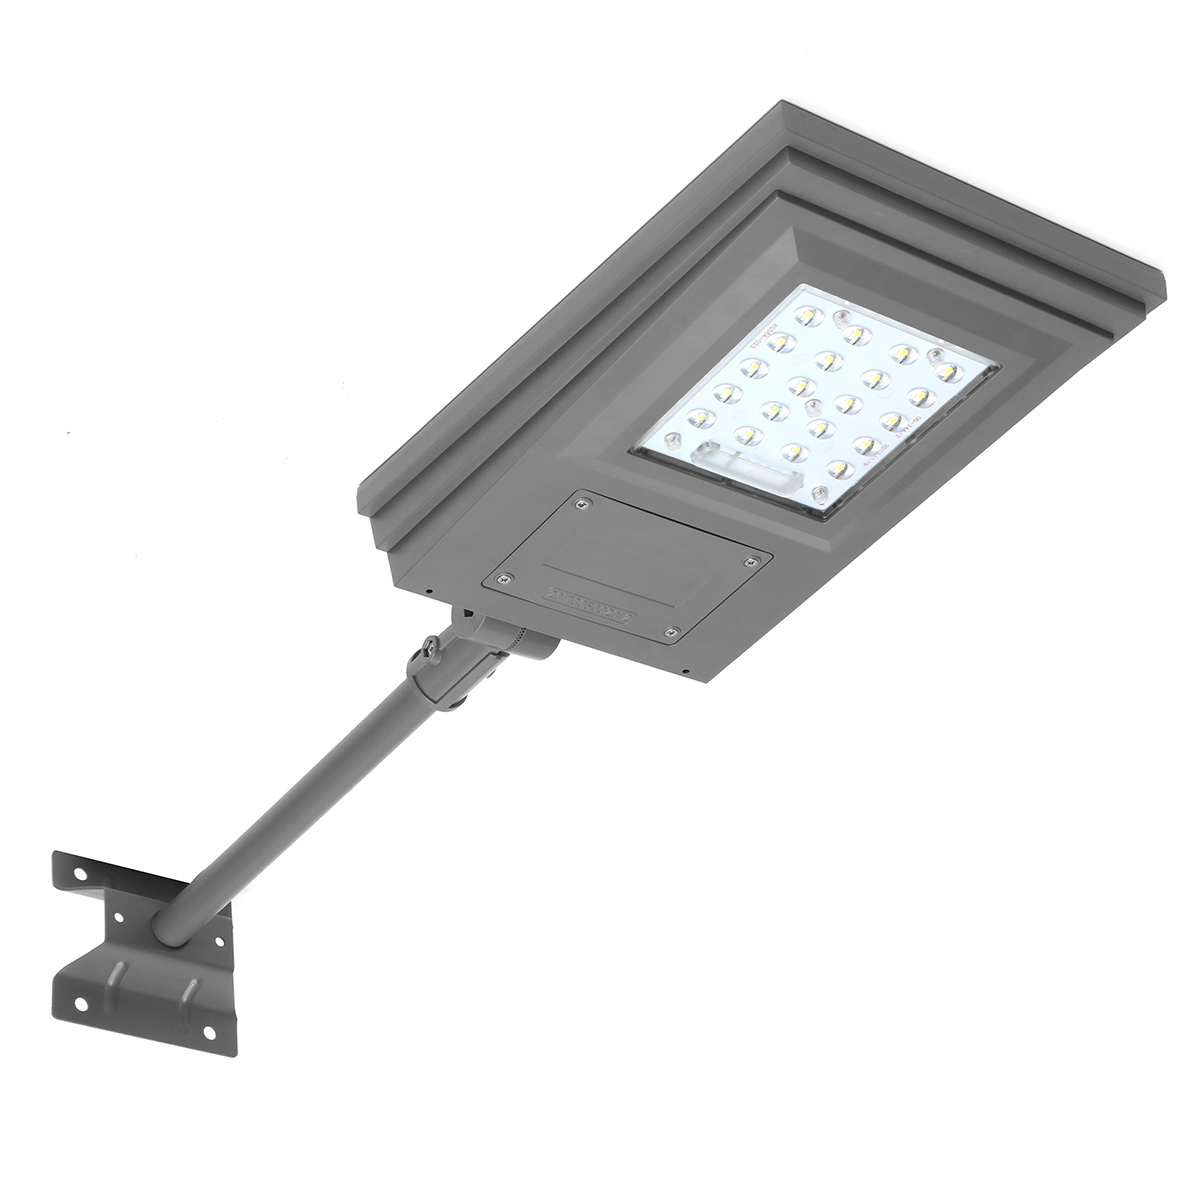 20W LED Solar Street Light Walkway Light with Remote Controller With Bracket Outdoor Lighting Garden Security Lamp IP6520W LED Solar Street Light Walkway Light with Remote Controller With Bracket Outdoor Lighting Garden Security Lamp IP65